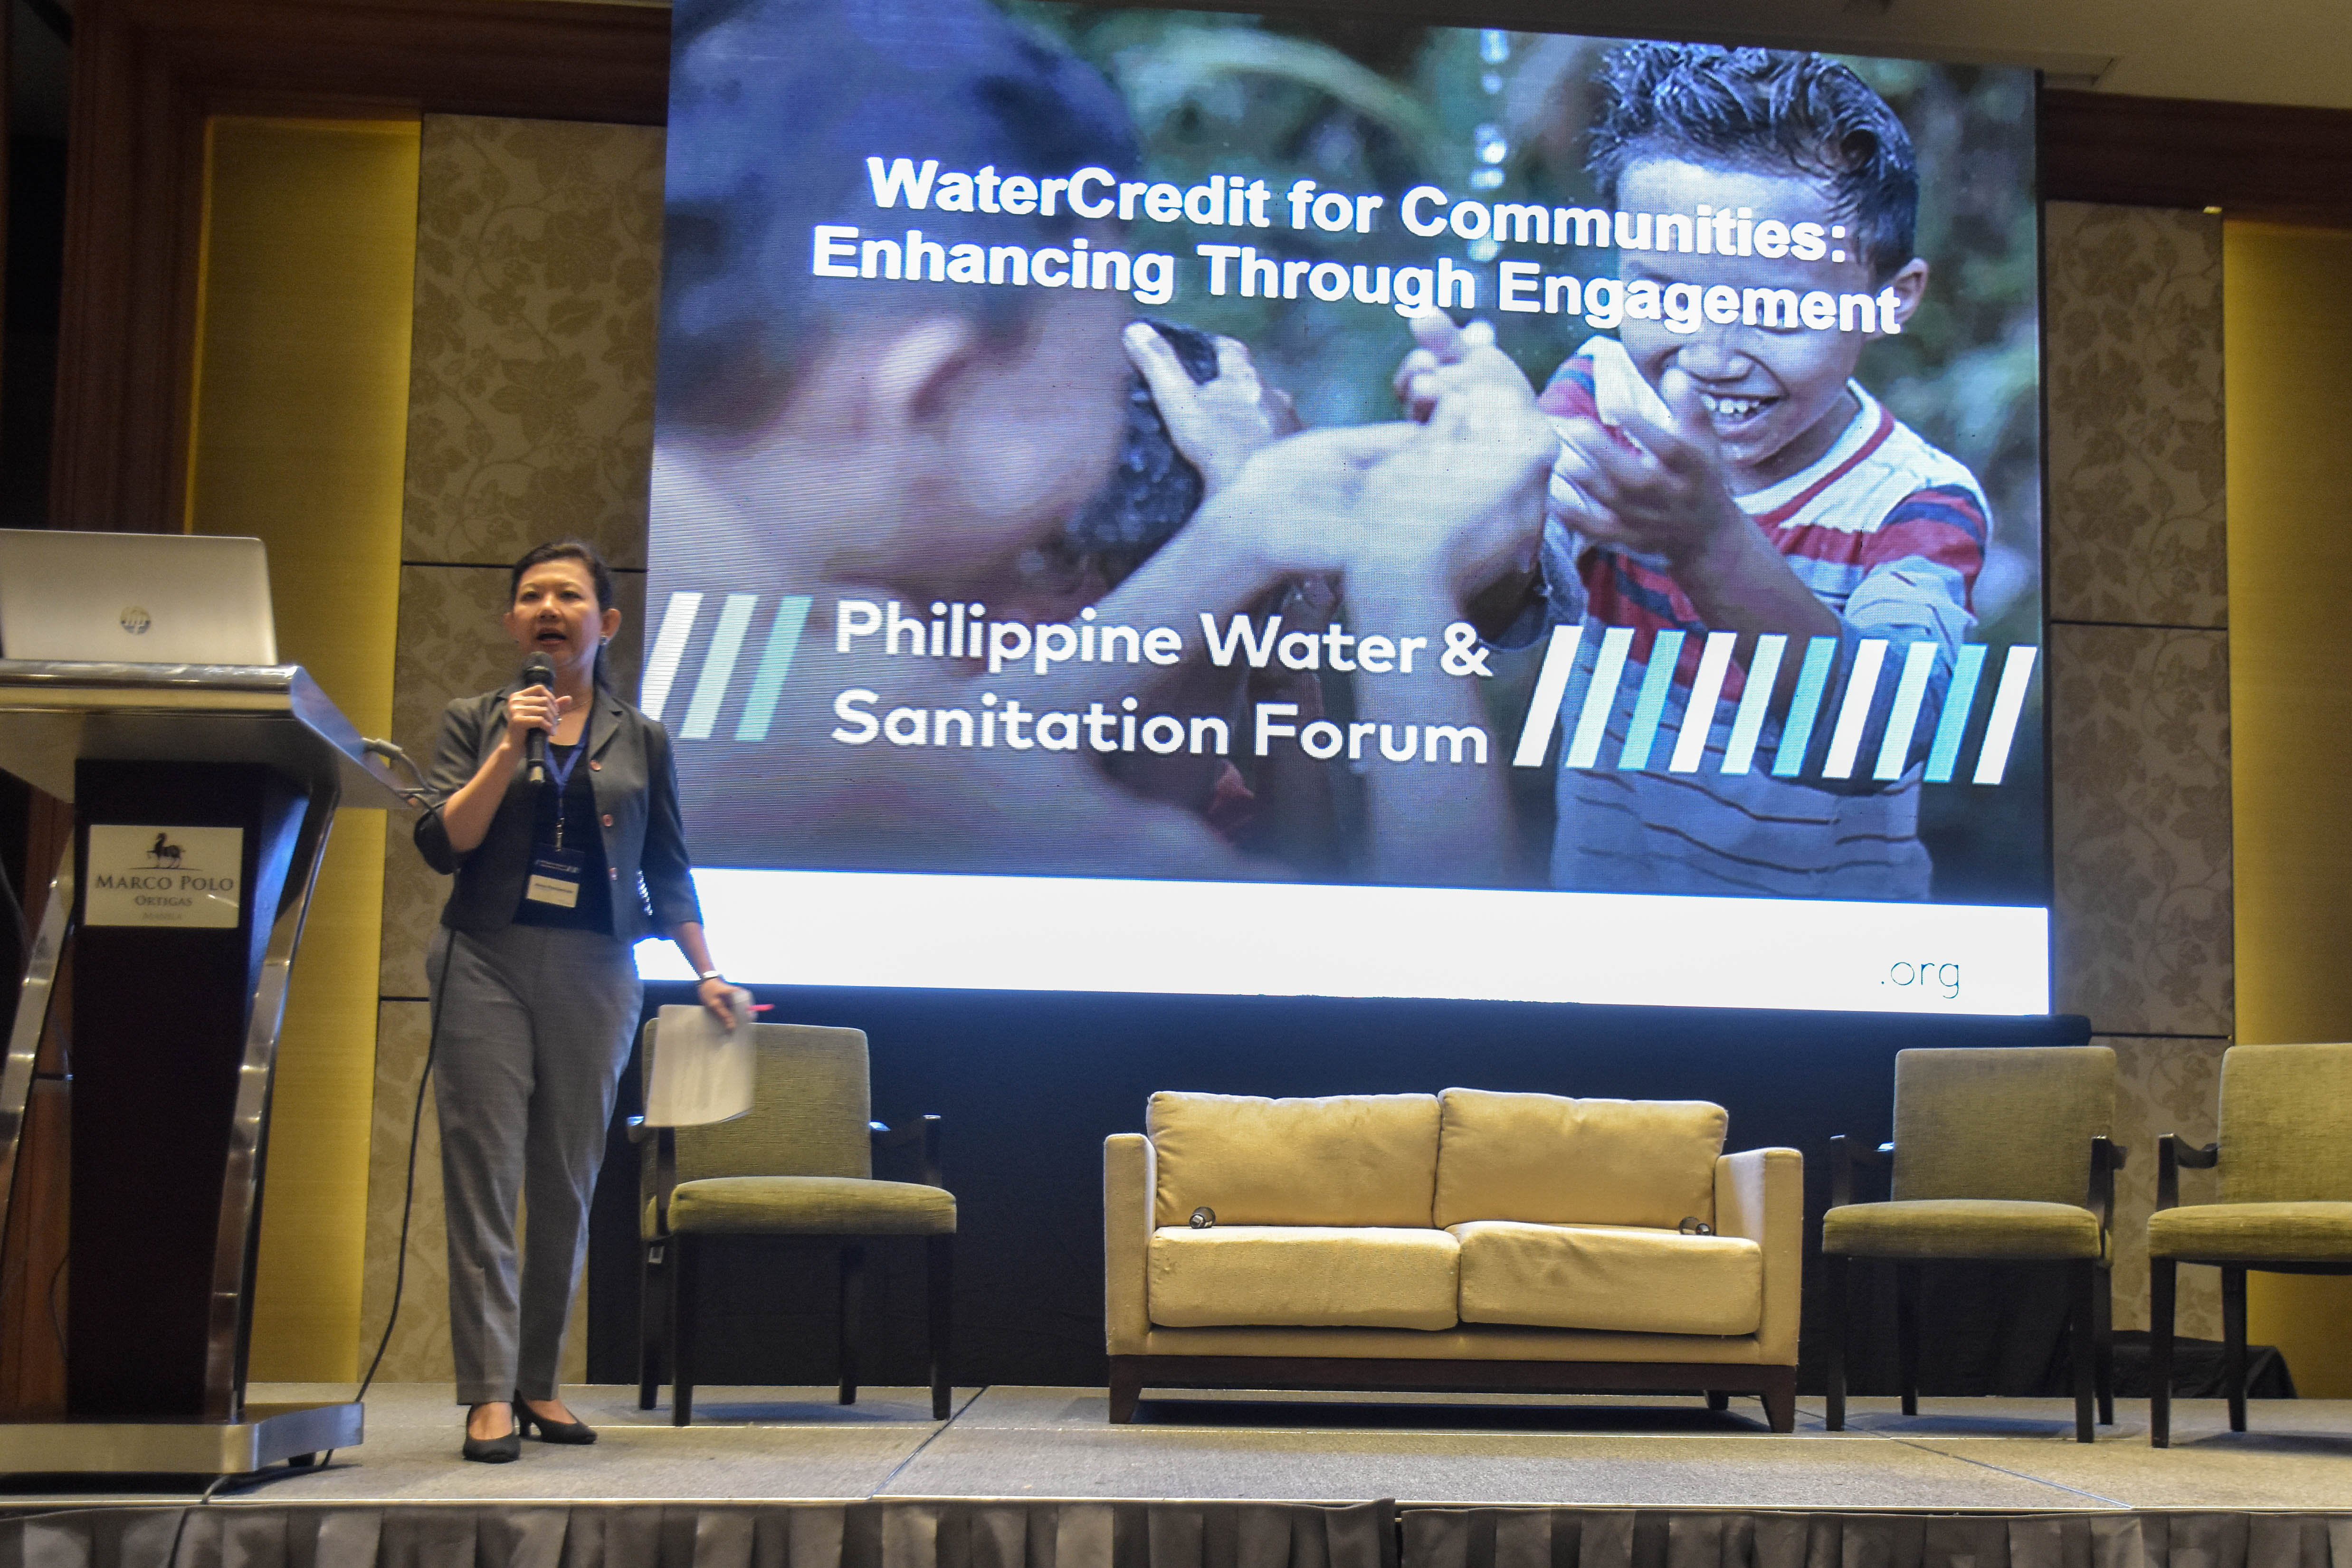 Philippine Water & Sanitation Forum Photo 1